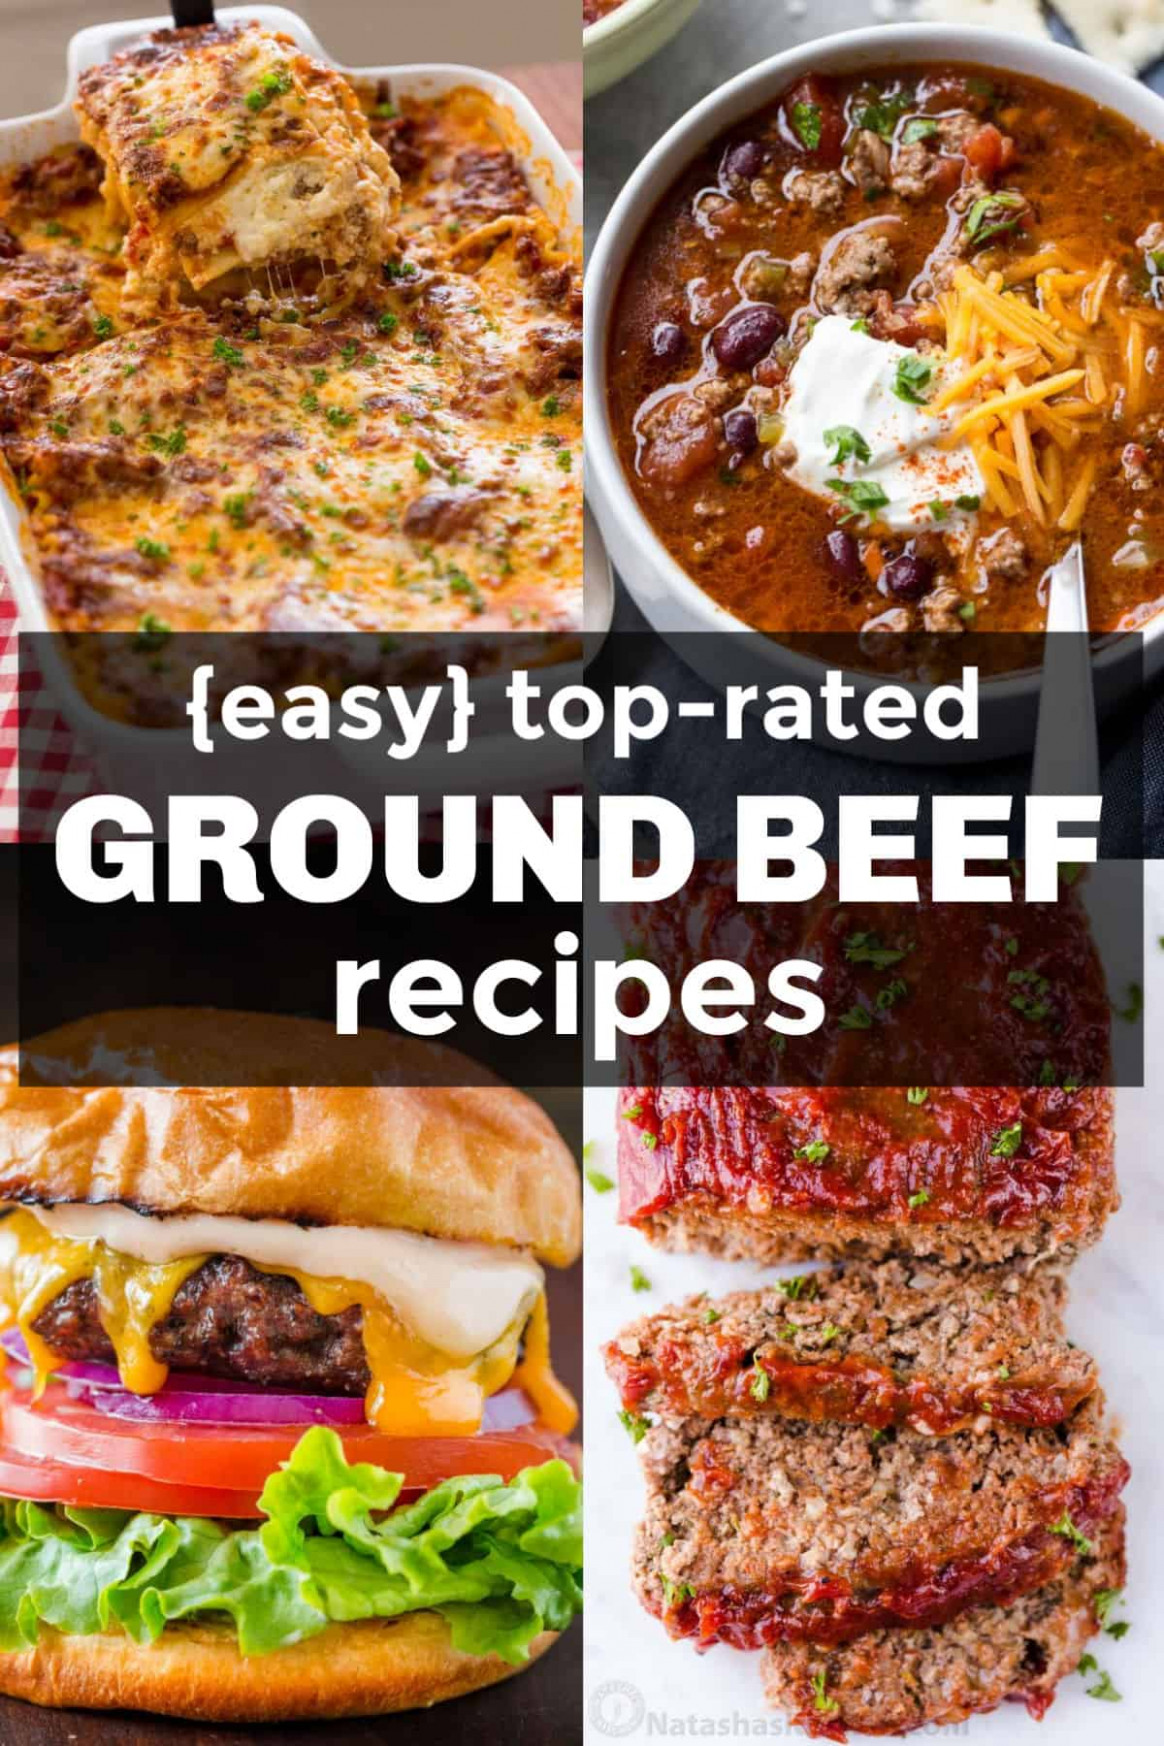 How to Cook Ground Beef for Ground Beef Recipes - easy food recipes